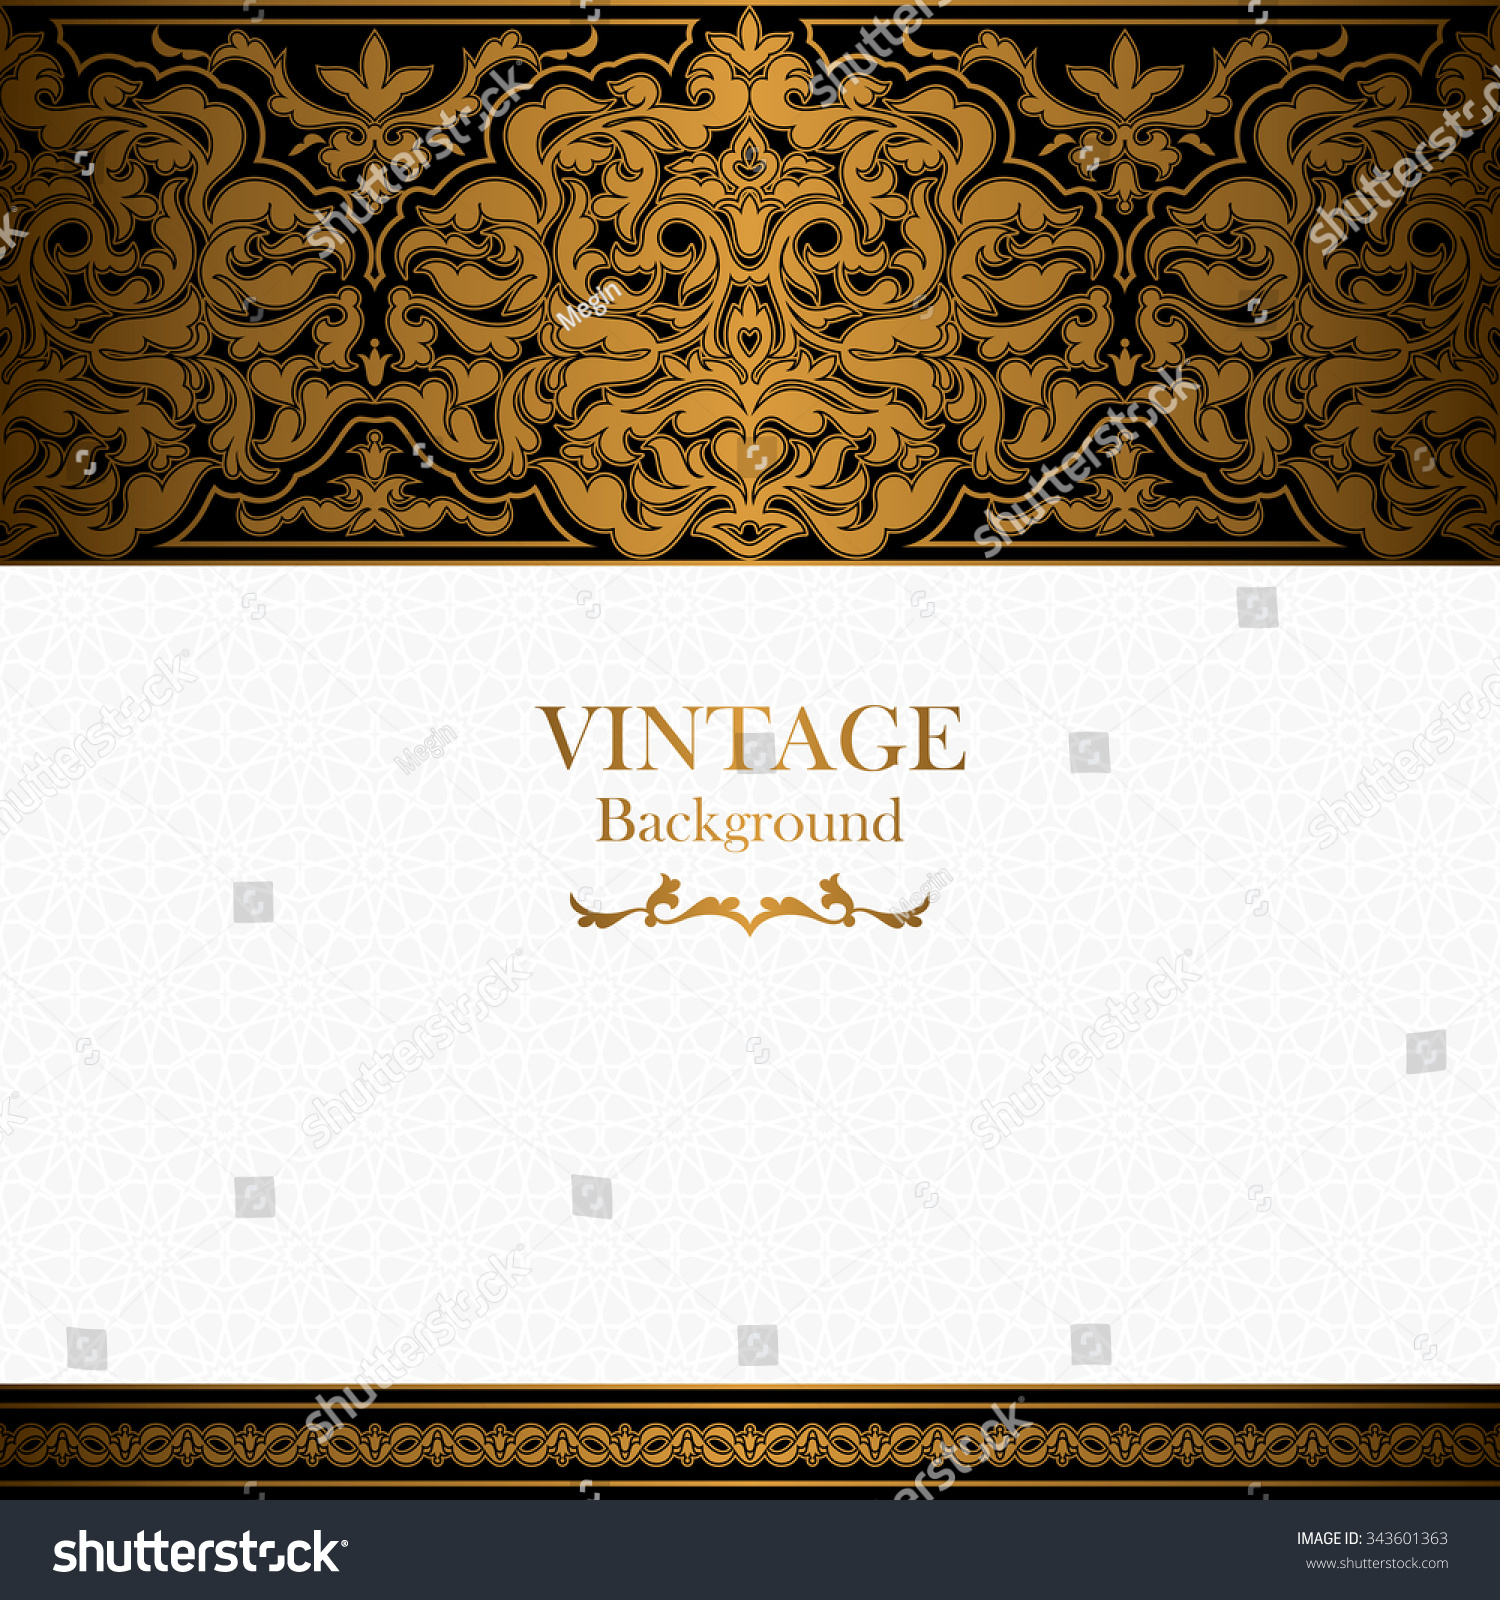 Quran Book Cover Template : Royalty free vintage background islamic style…